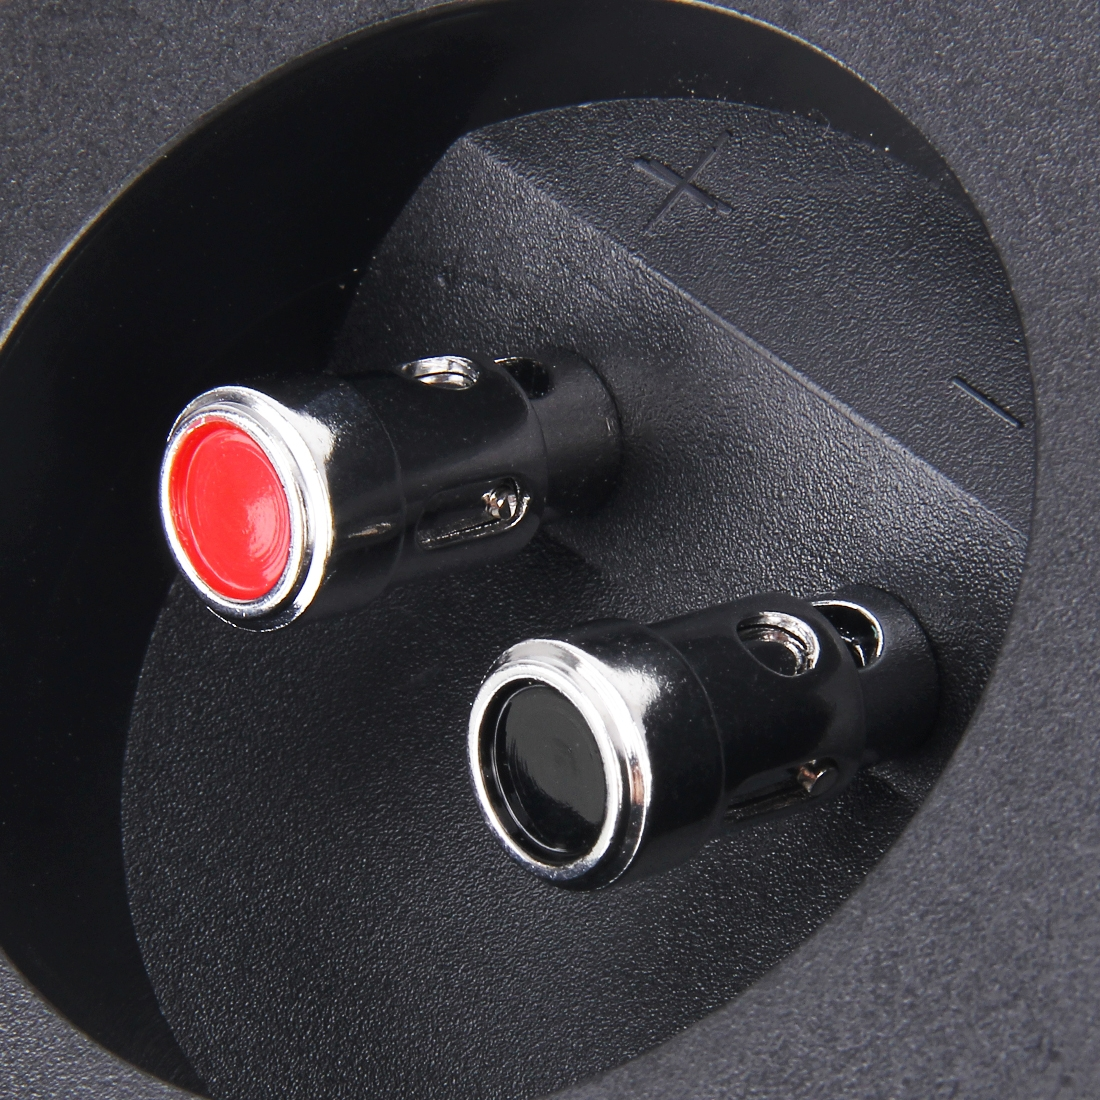 2 PCS DIY Home Car 2 Way Speaker Box Terminal Cup Subwoofer Plugs Stereo Binding Post